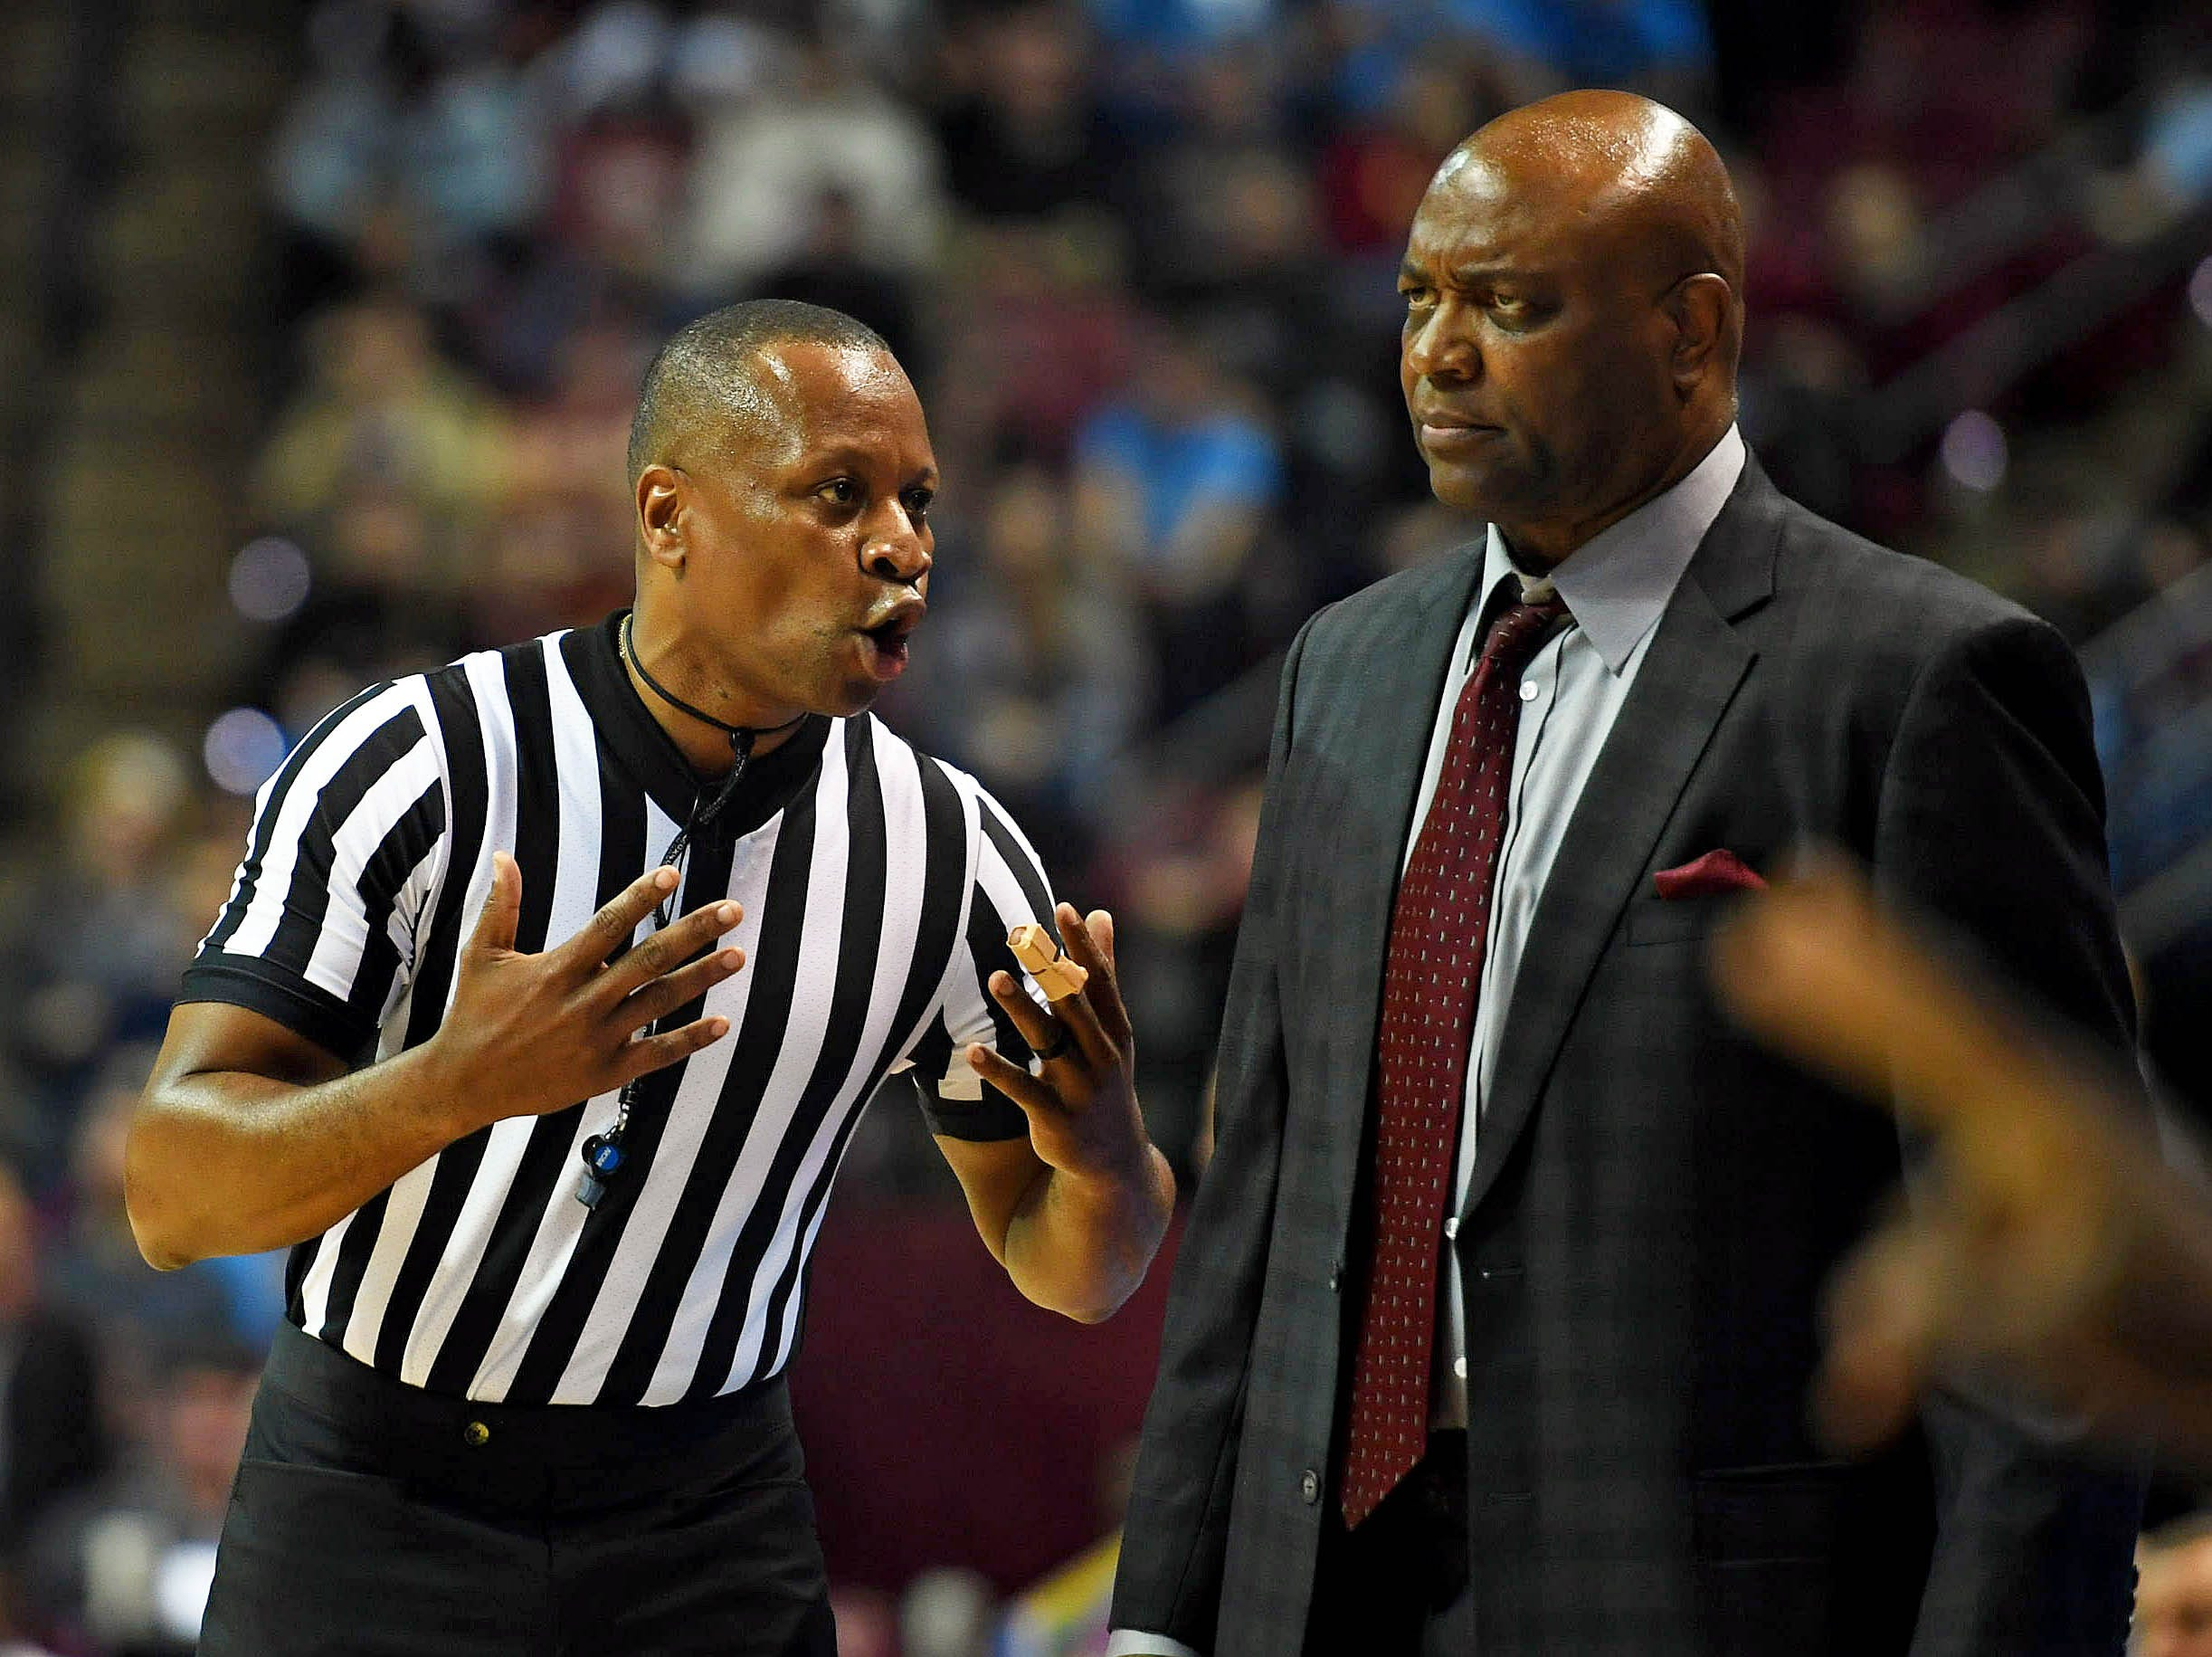 Nov 28, 2018; Tallahassee, FL, USA; Florida State Seminoles head coach Leonard Hamilton speaks with a referee during the second half of the game against the Purdue Boilermakers at Donald L. Tucker Center. Mandatory Credit: Melina Myers-USA TODAY Sports